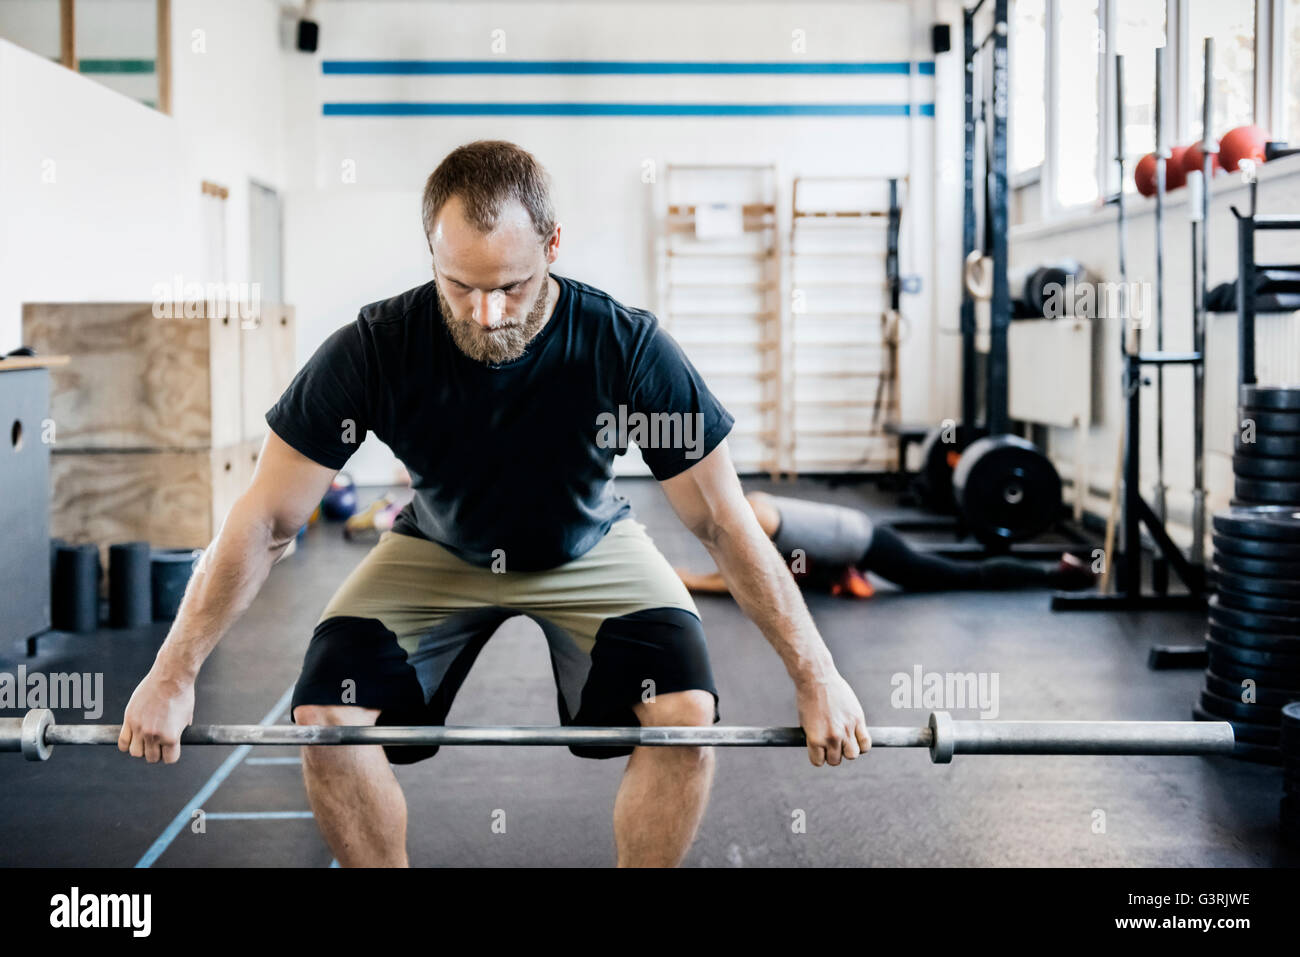 Germany, Young man weightlifting - Stock Image